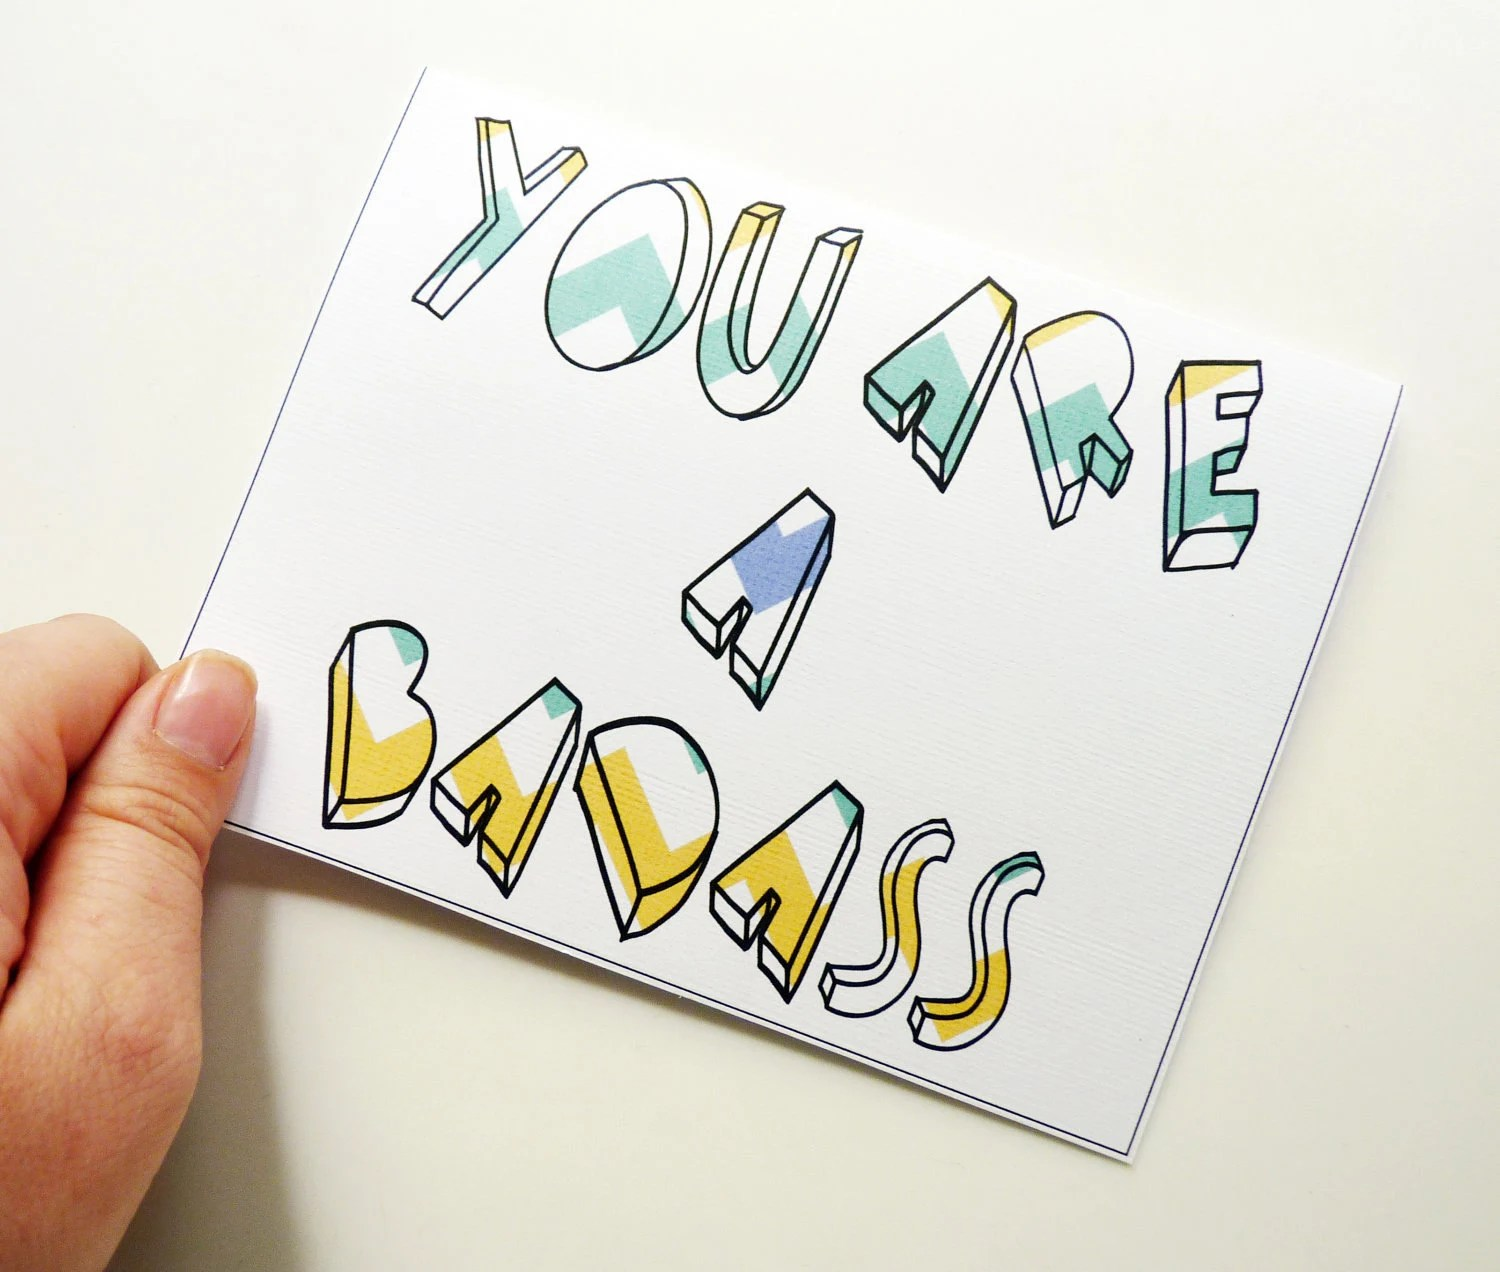 You Are A Badass - Textured Chevron Teal, Blue & Yellow Greeting Card - Father's Day, Congratulations, New Job, Graduation, Any Occassion